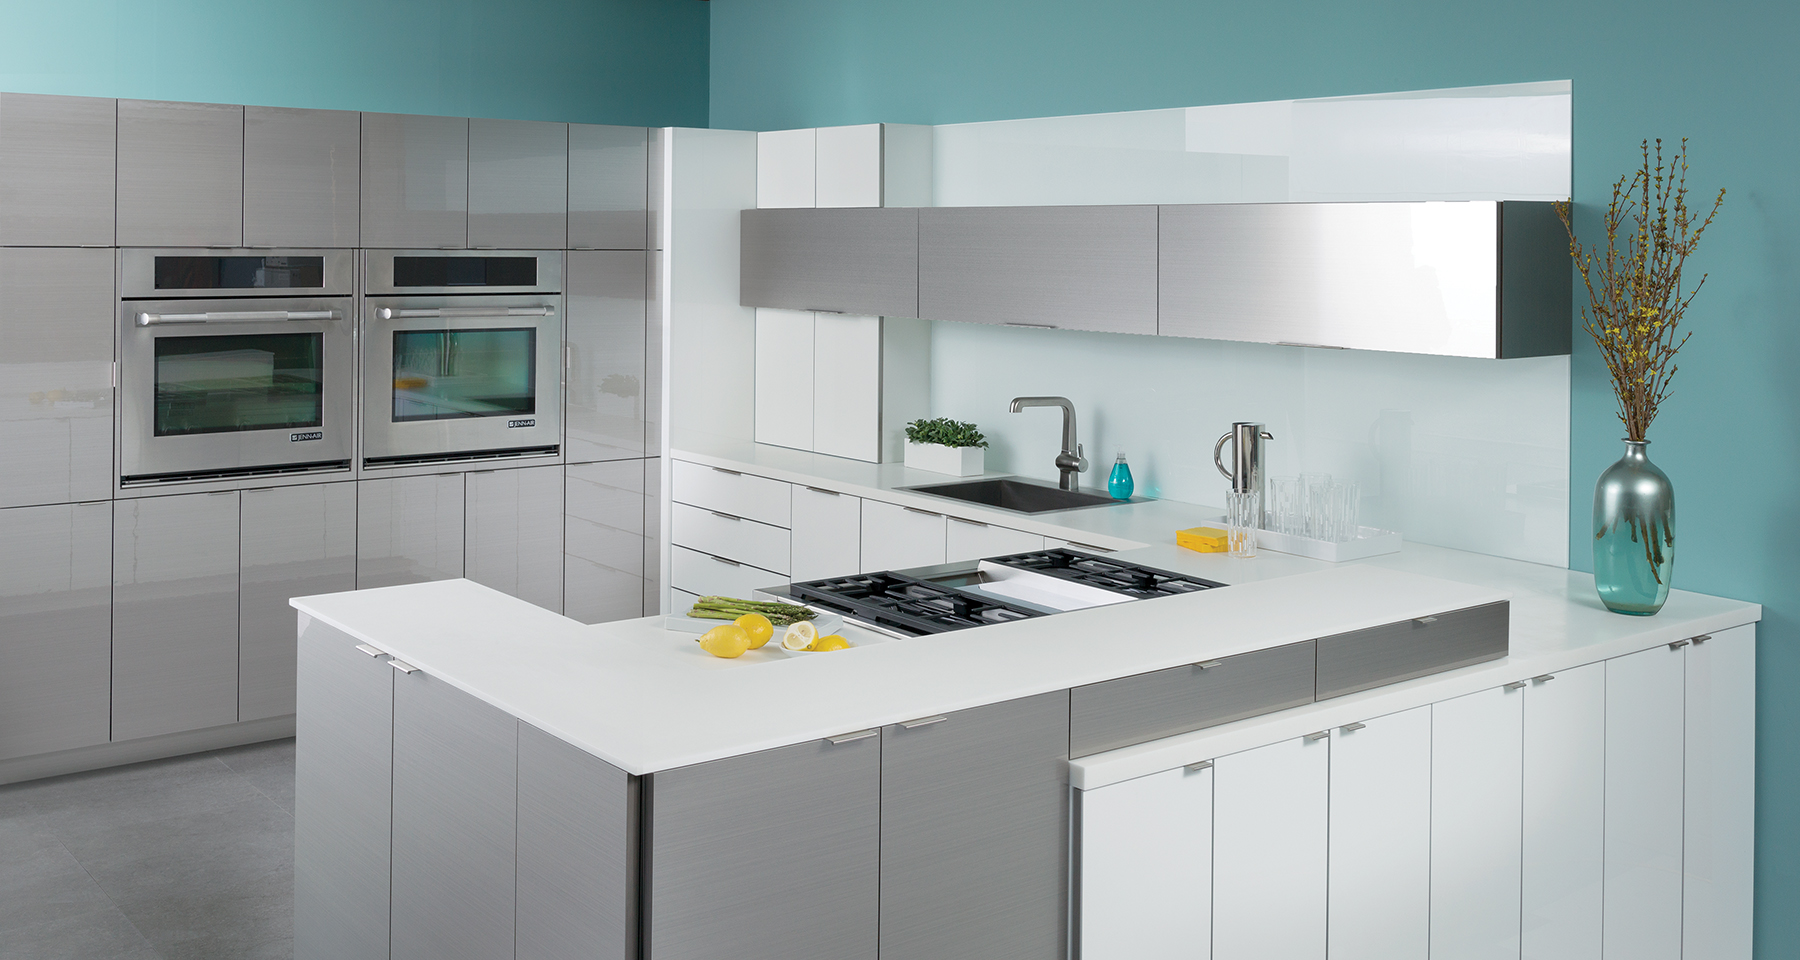 A modern kitchen design with glossy and contemporary cabinets the look similar to stainless steel and white high gloss acrylic cabinets.